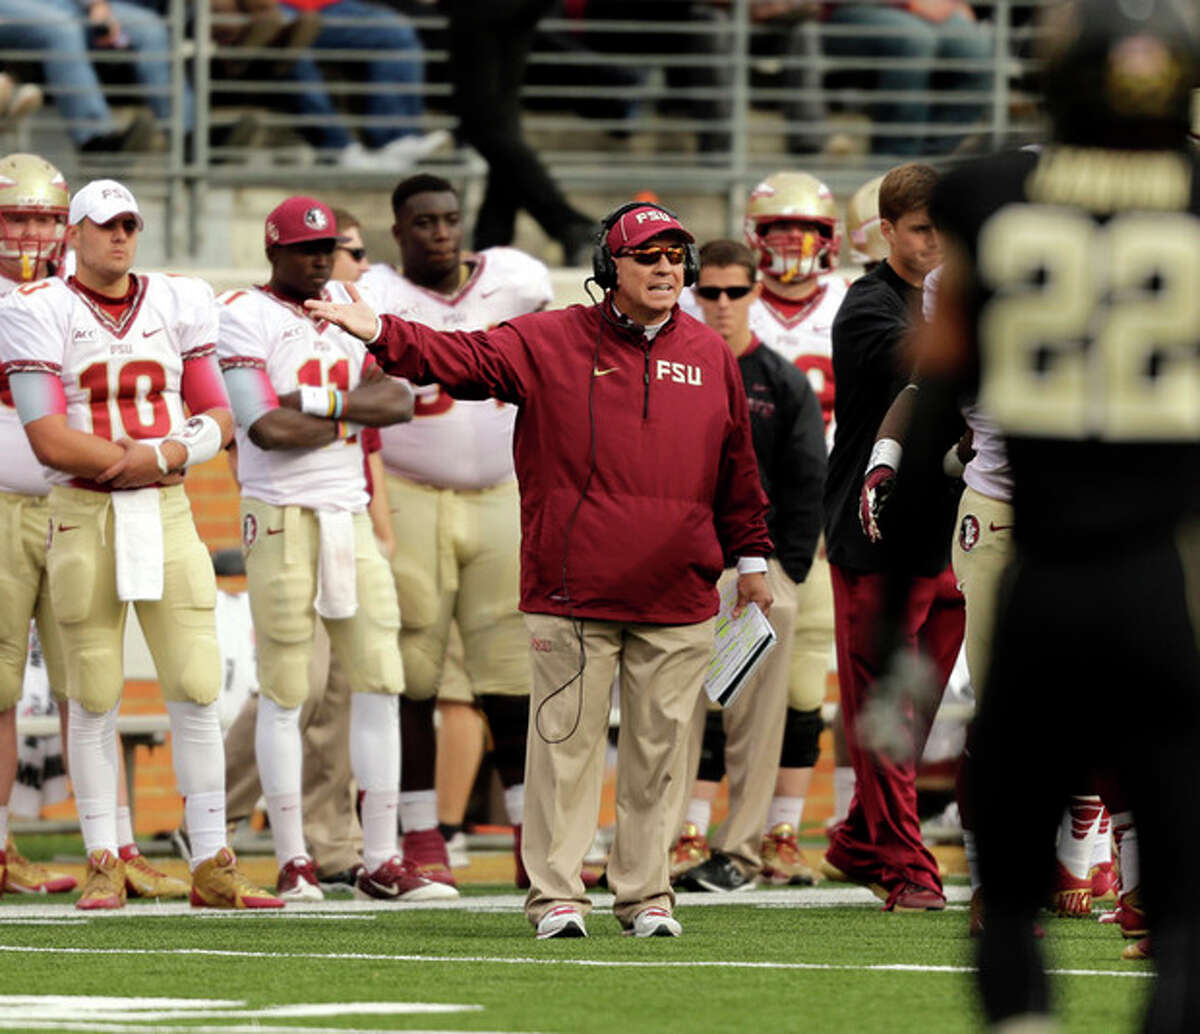 Florida State head coach Jimbo Fisher argues a call as his team plays Wake Forest in the second half of an NCAA college football game in Winston-Salem, N.C., Saturday, Nov. 9, 2013. Florida State won 59-3. (AP Photo/Nell Redmond)